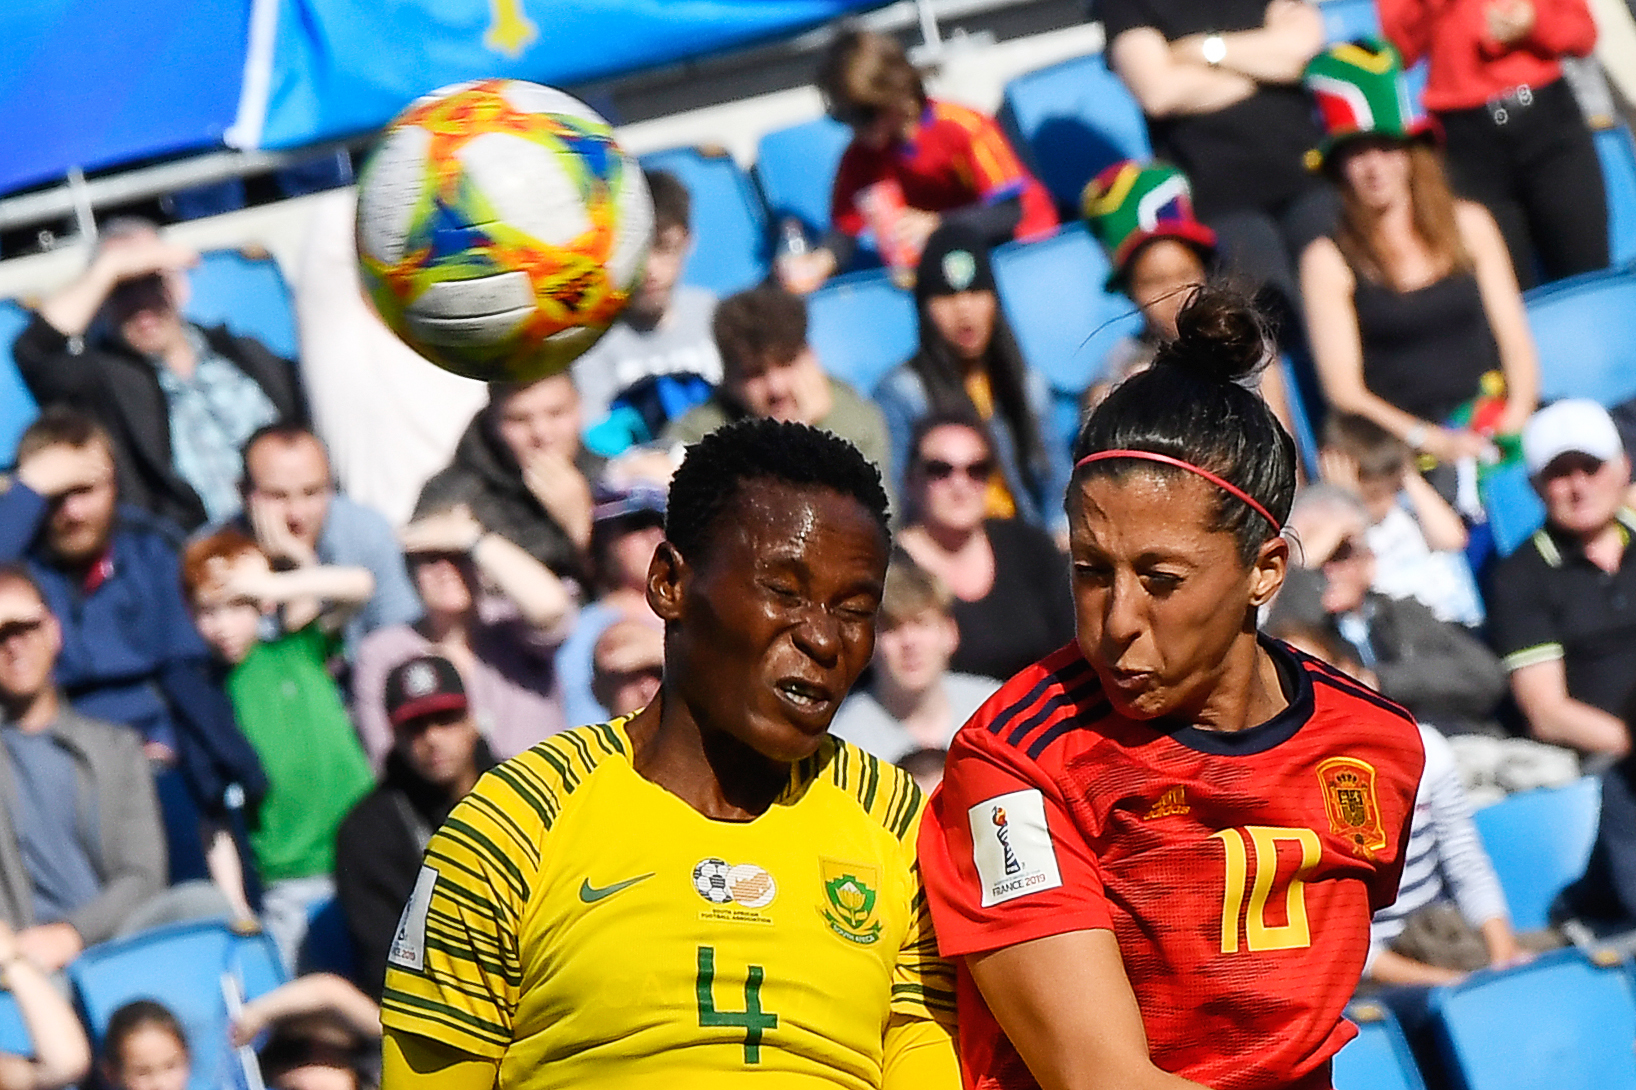 South Africa's defender Noko Matlou (L) vies for the ball with Spain's forward Jennifer Hermoso during the France 2019 Women's World Cup Group B football match between Spain and South Africa, on June 8, 2019, at the Oceane Stadium in Le Havre, northwestern France.